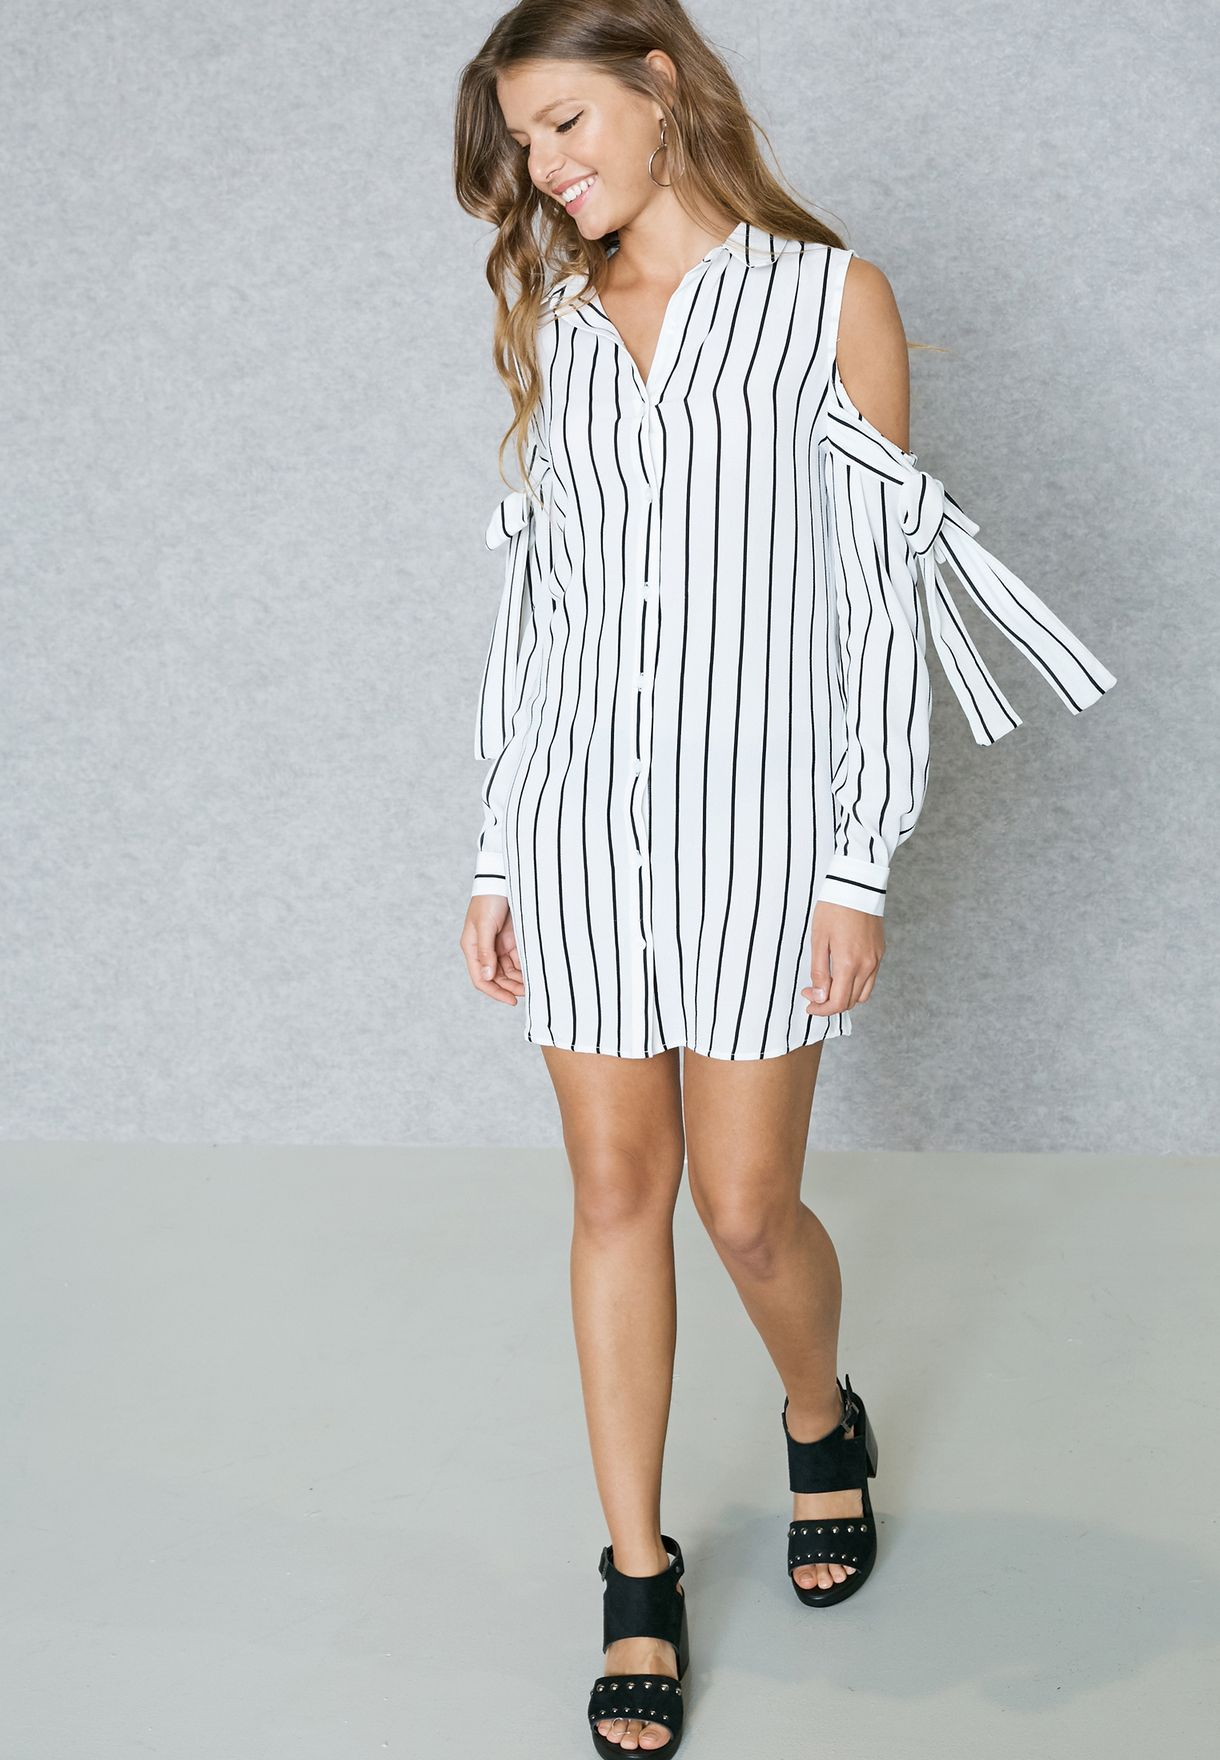 51229ab03b Shop Missguided white Striped Cold Shoulder Shirt Dress DD909781 for ...